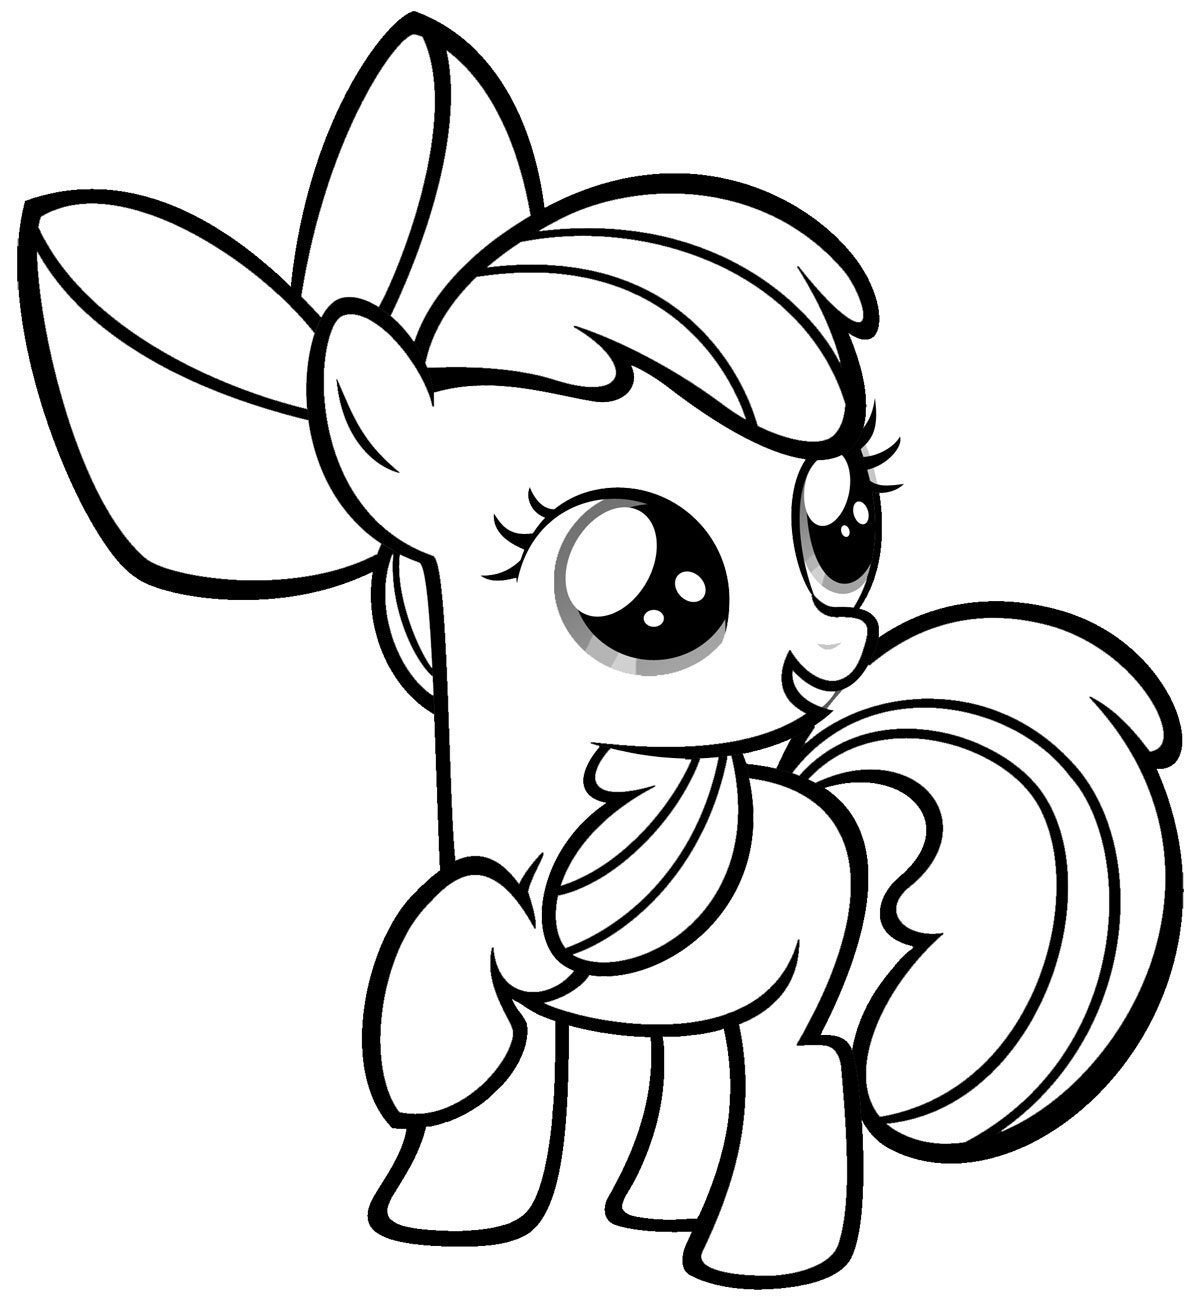 download free printable my little pony coloring pages for kids - Free Printable Coloring Pages